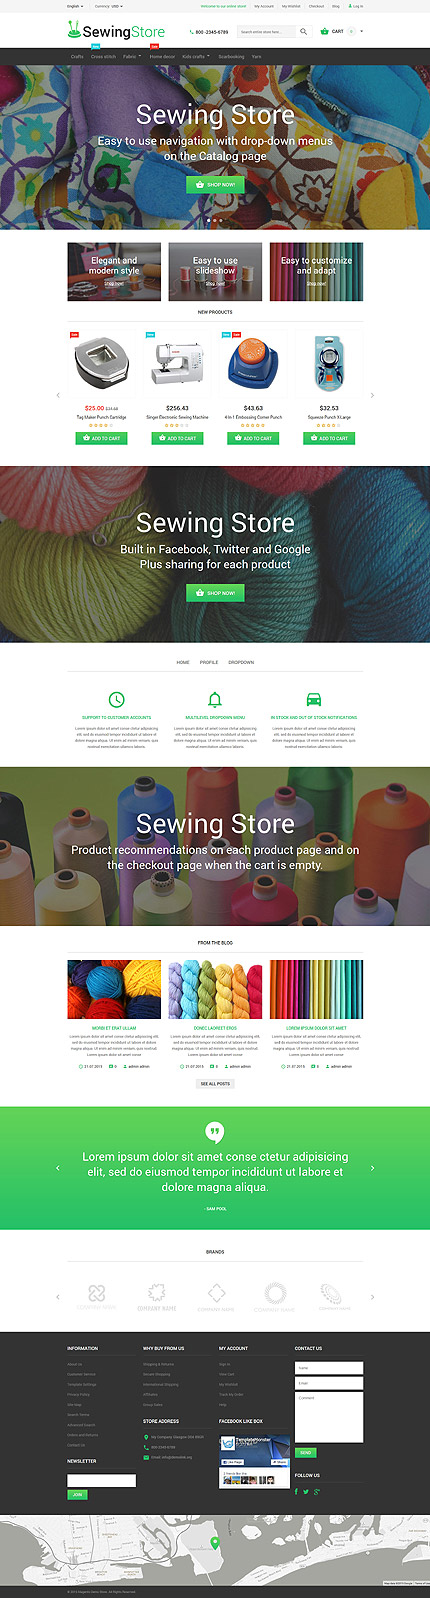 Most Popular Hobbies & Crafts website inspirations at your coffee break? Browse for more Magento #templates! // Regular price: $179 // Sources available: .PSD, .XML, .PHTML, .CSS #Most Popular #Hobbies & Crafts #Magento